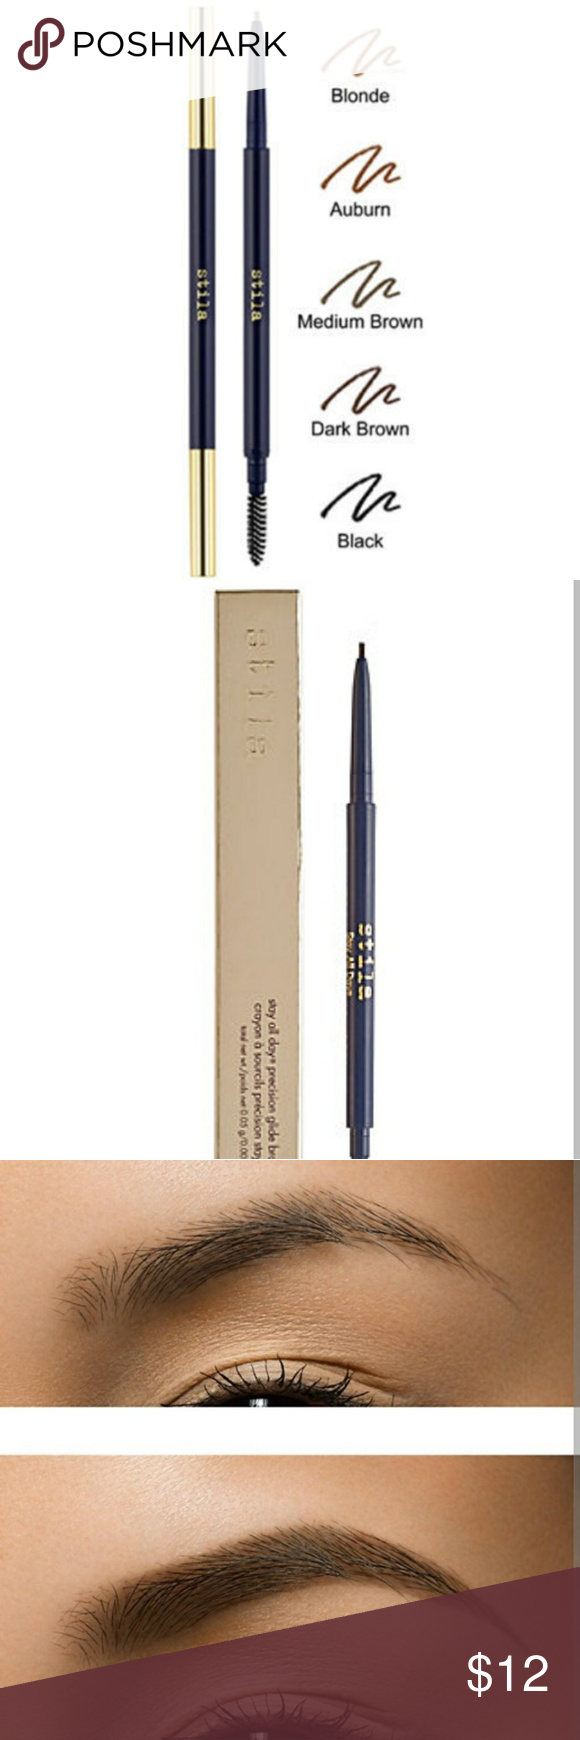 Stila Stay All Day Brow Pencil Auburn Nwt My Posh Closet